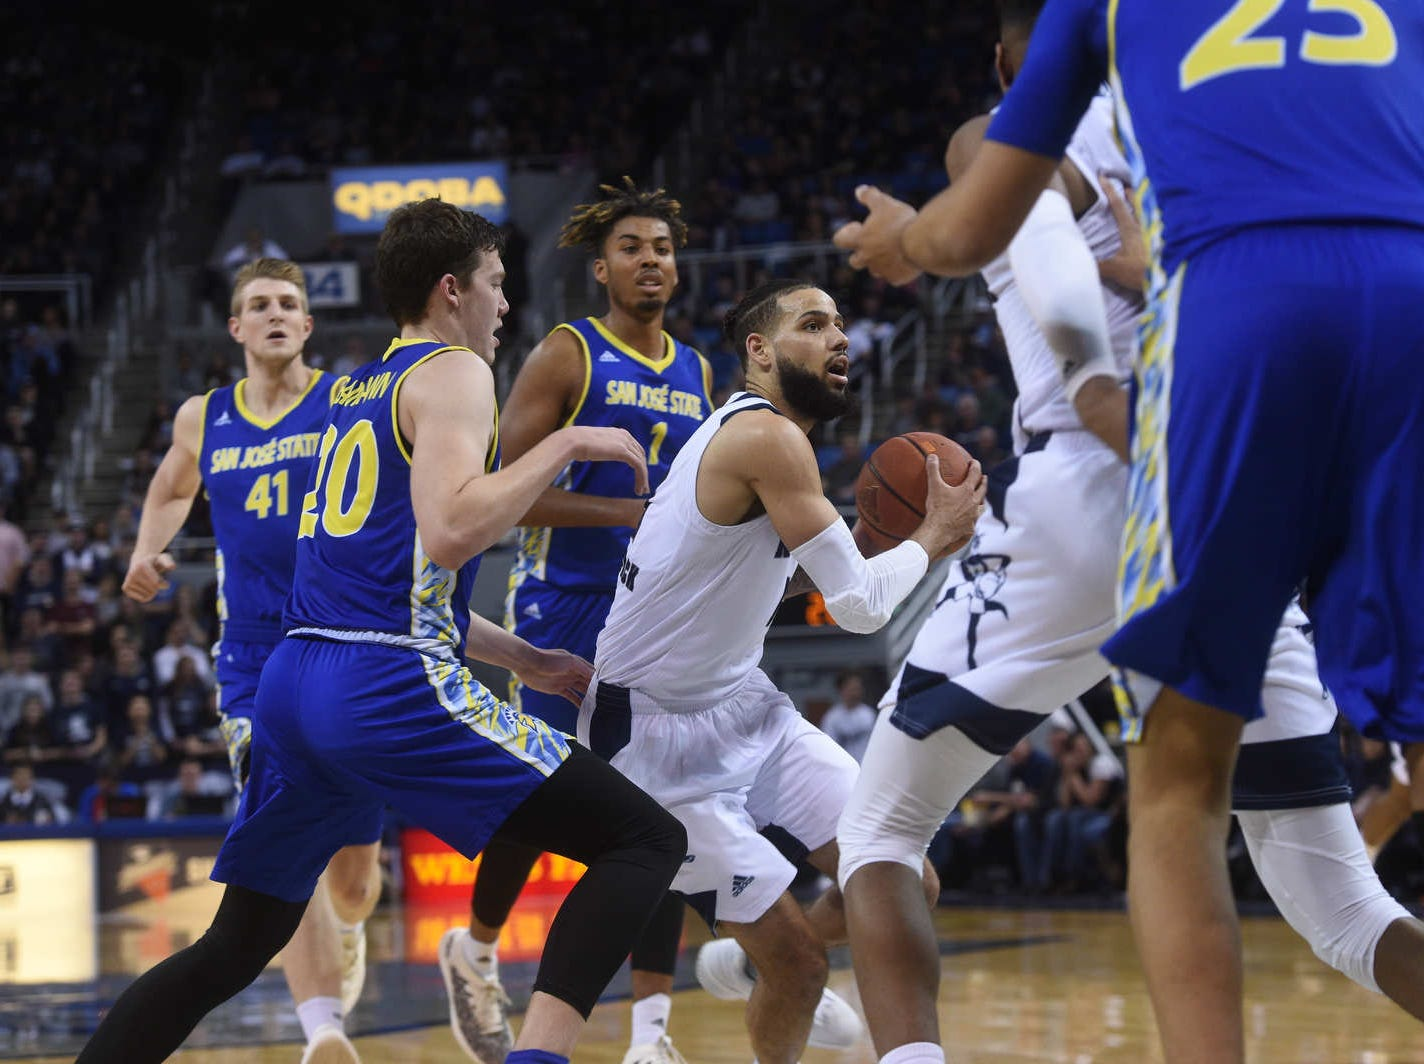 Nevada takes on San Jose State during their basketball game at Lawlor Events Center in Reno on Jan. 9, 2019.